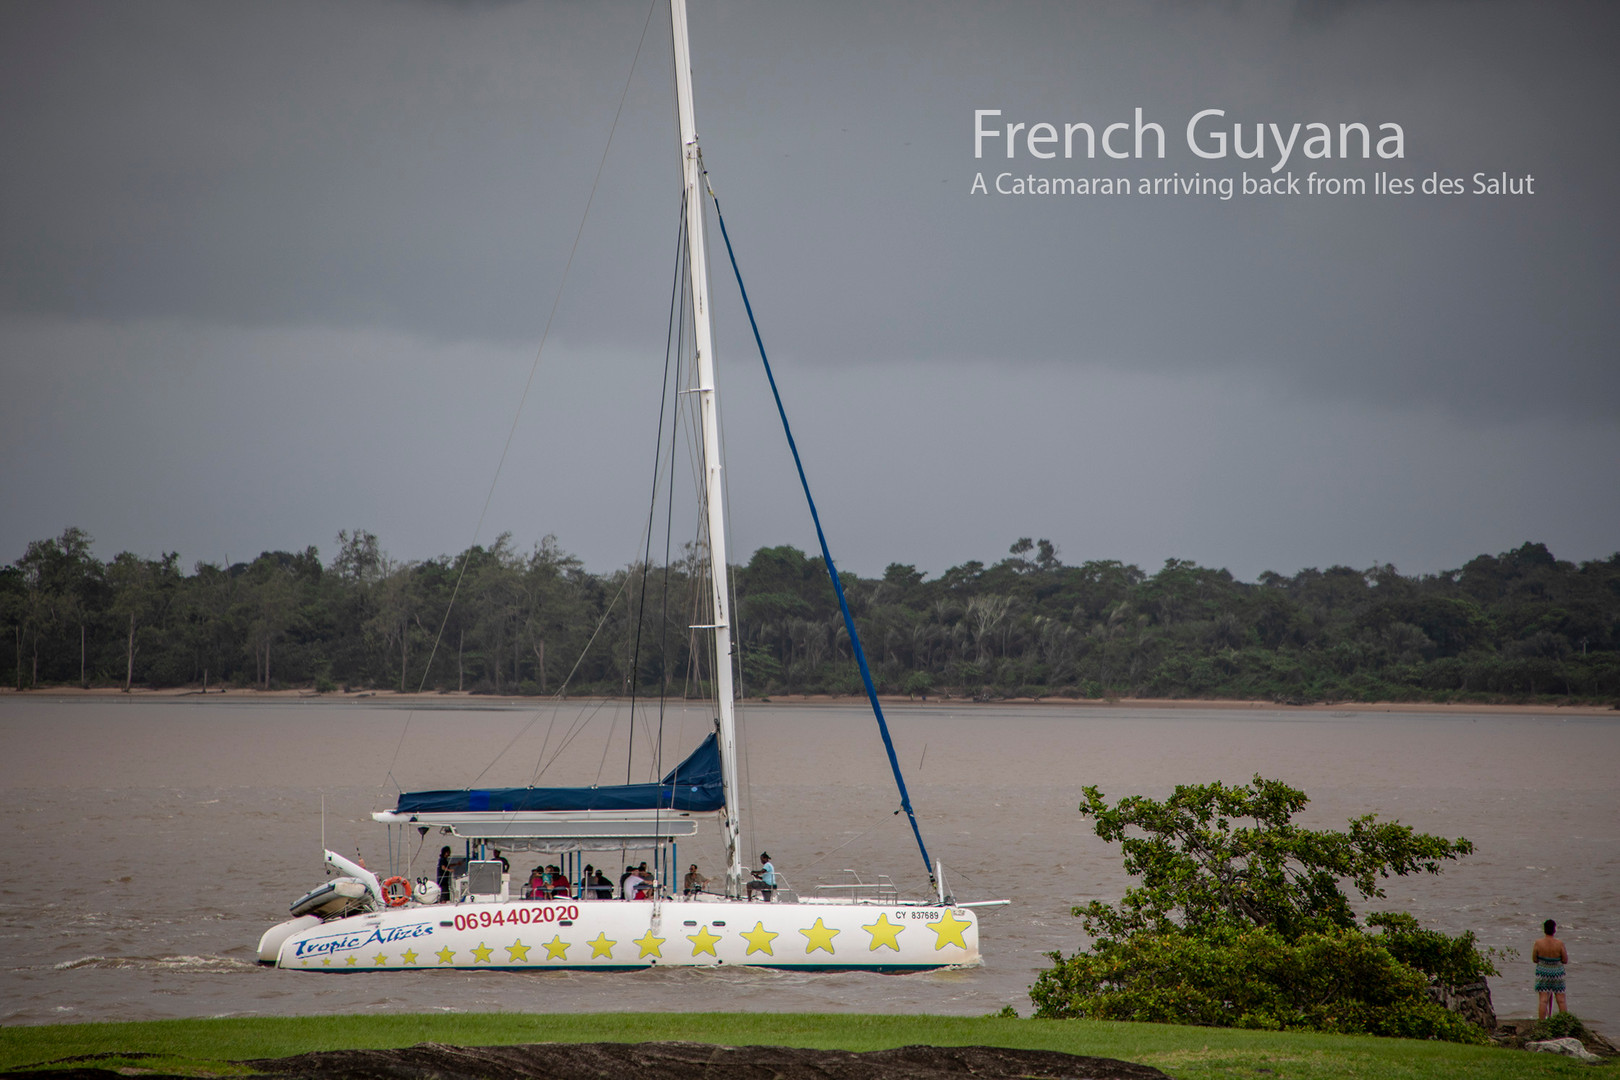 2019-05-15 French Guyana POW (06) 452A66